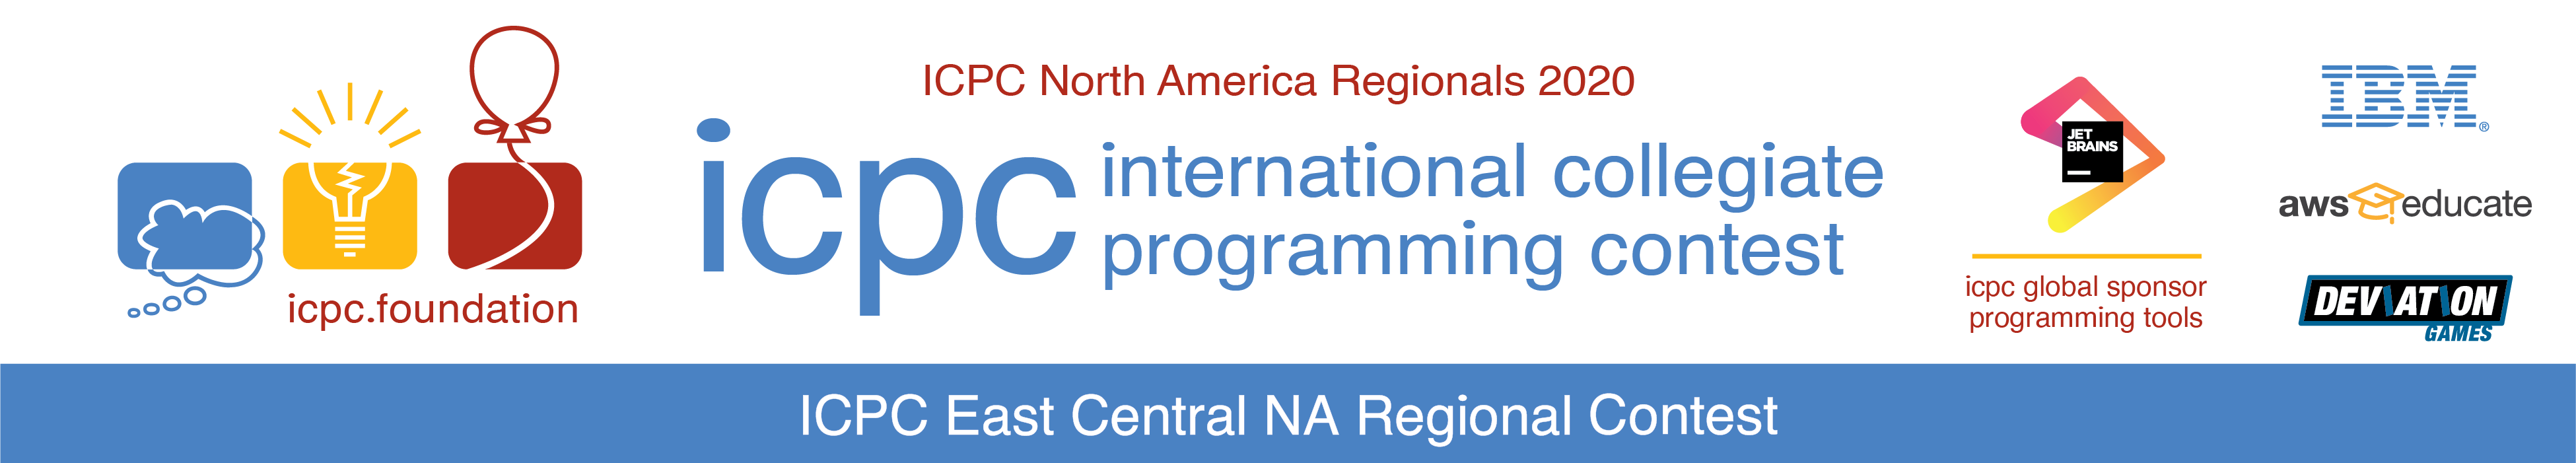 The 2020 ICPC East Central North America Regional Programming Contest